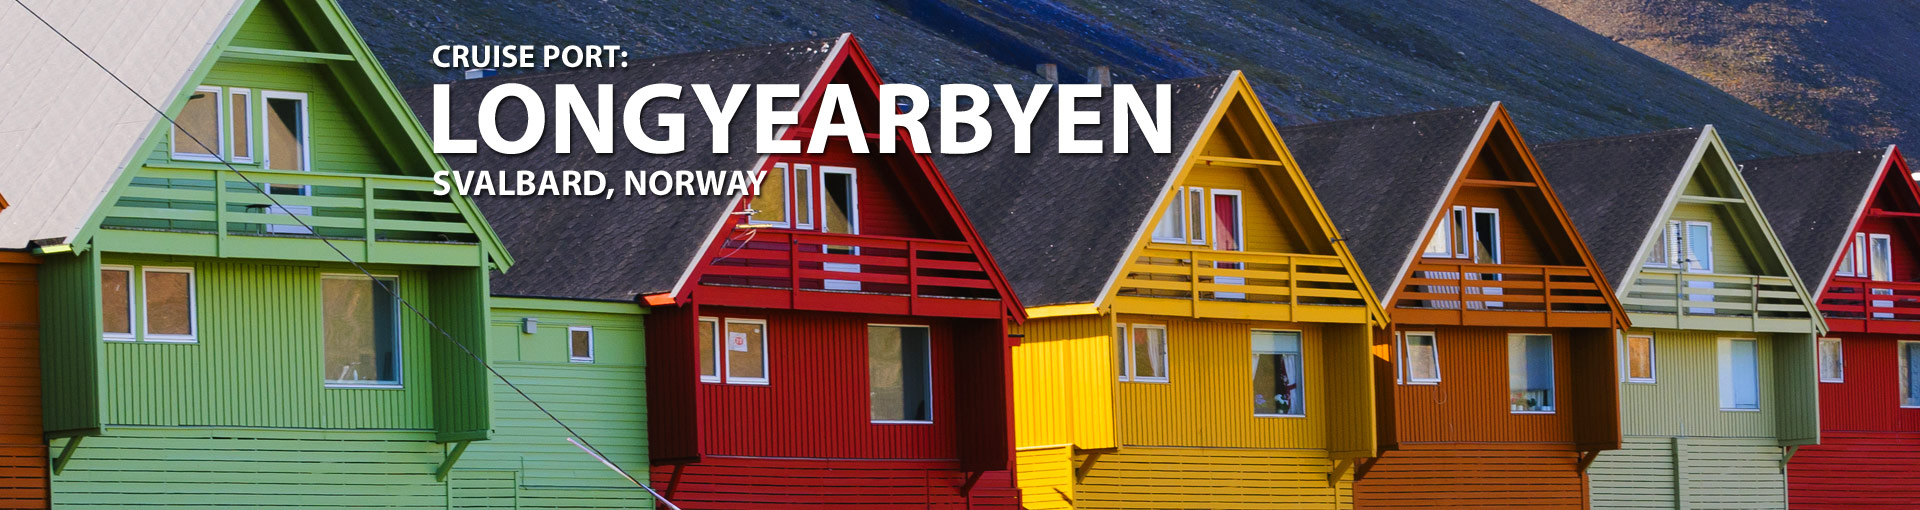 Cruises from Longyearbyen, Svalbard, Norway